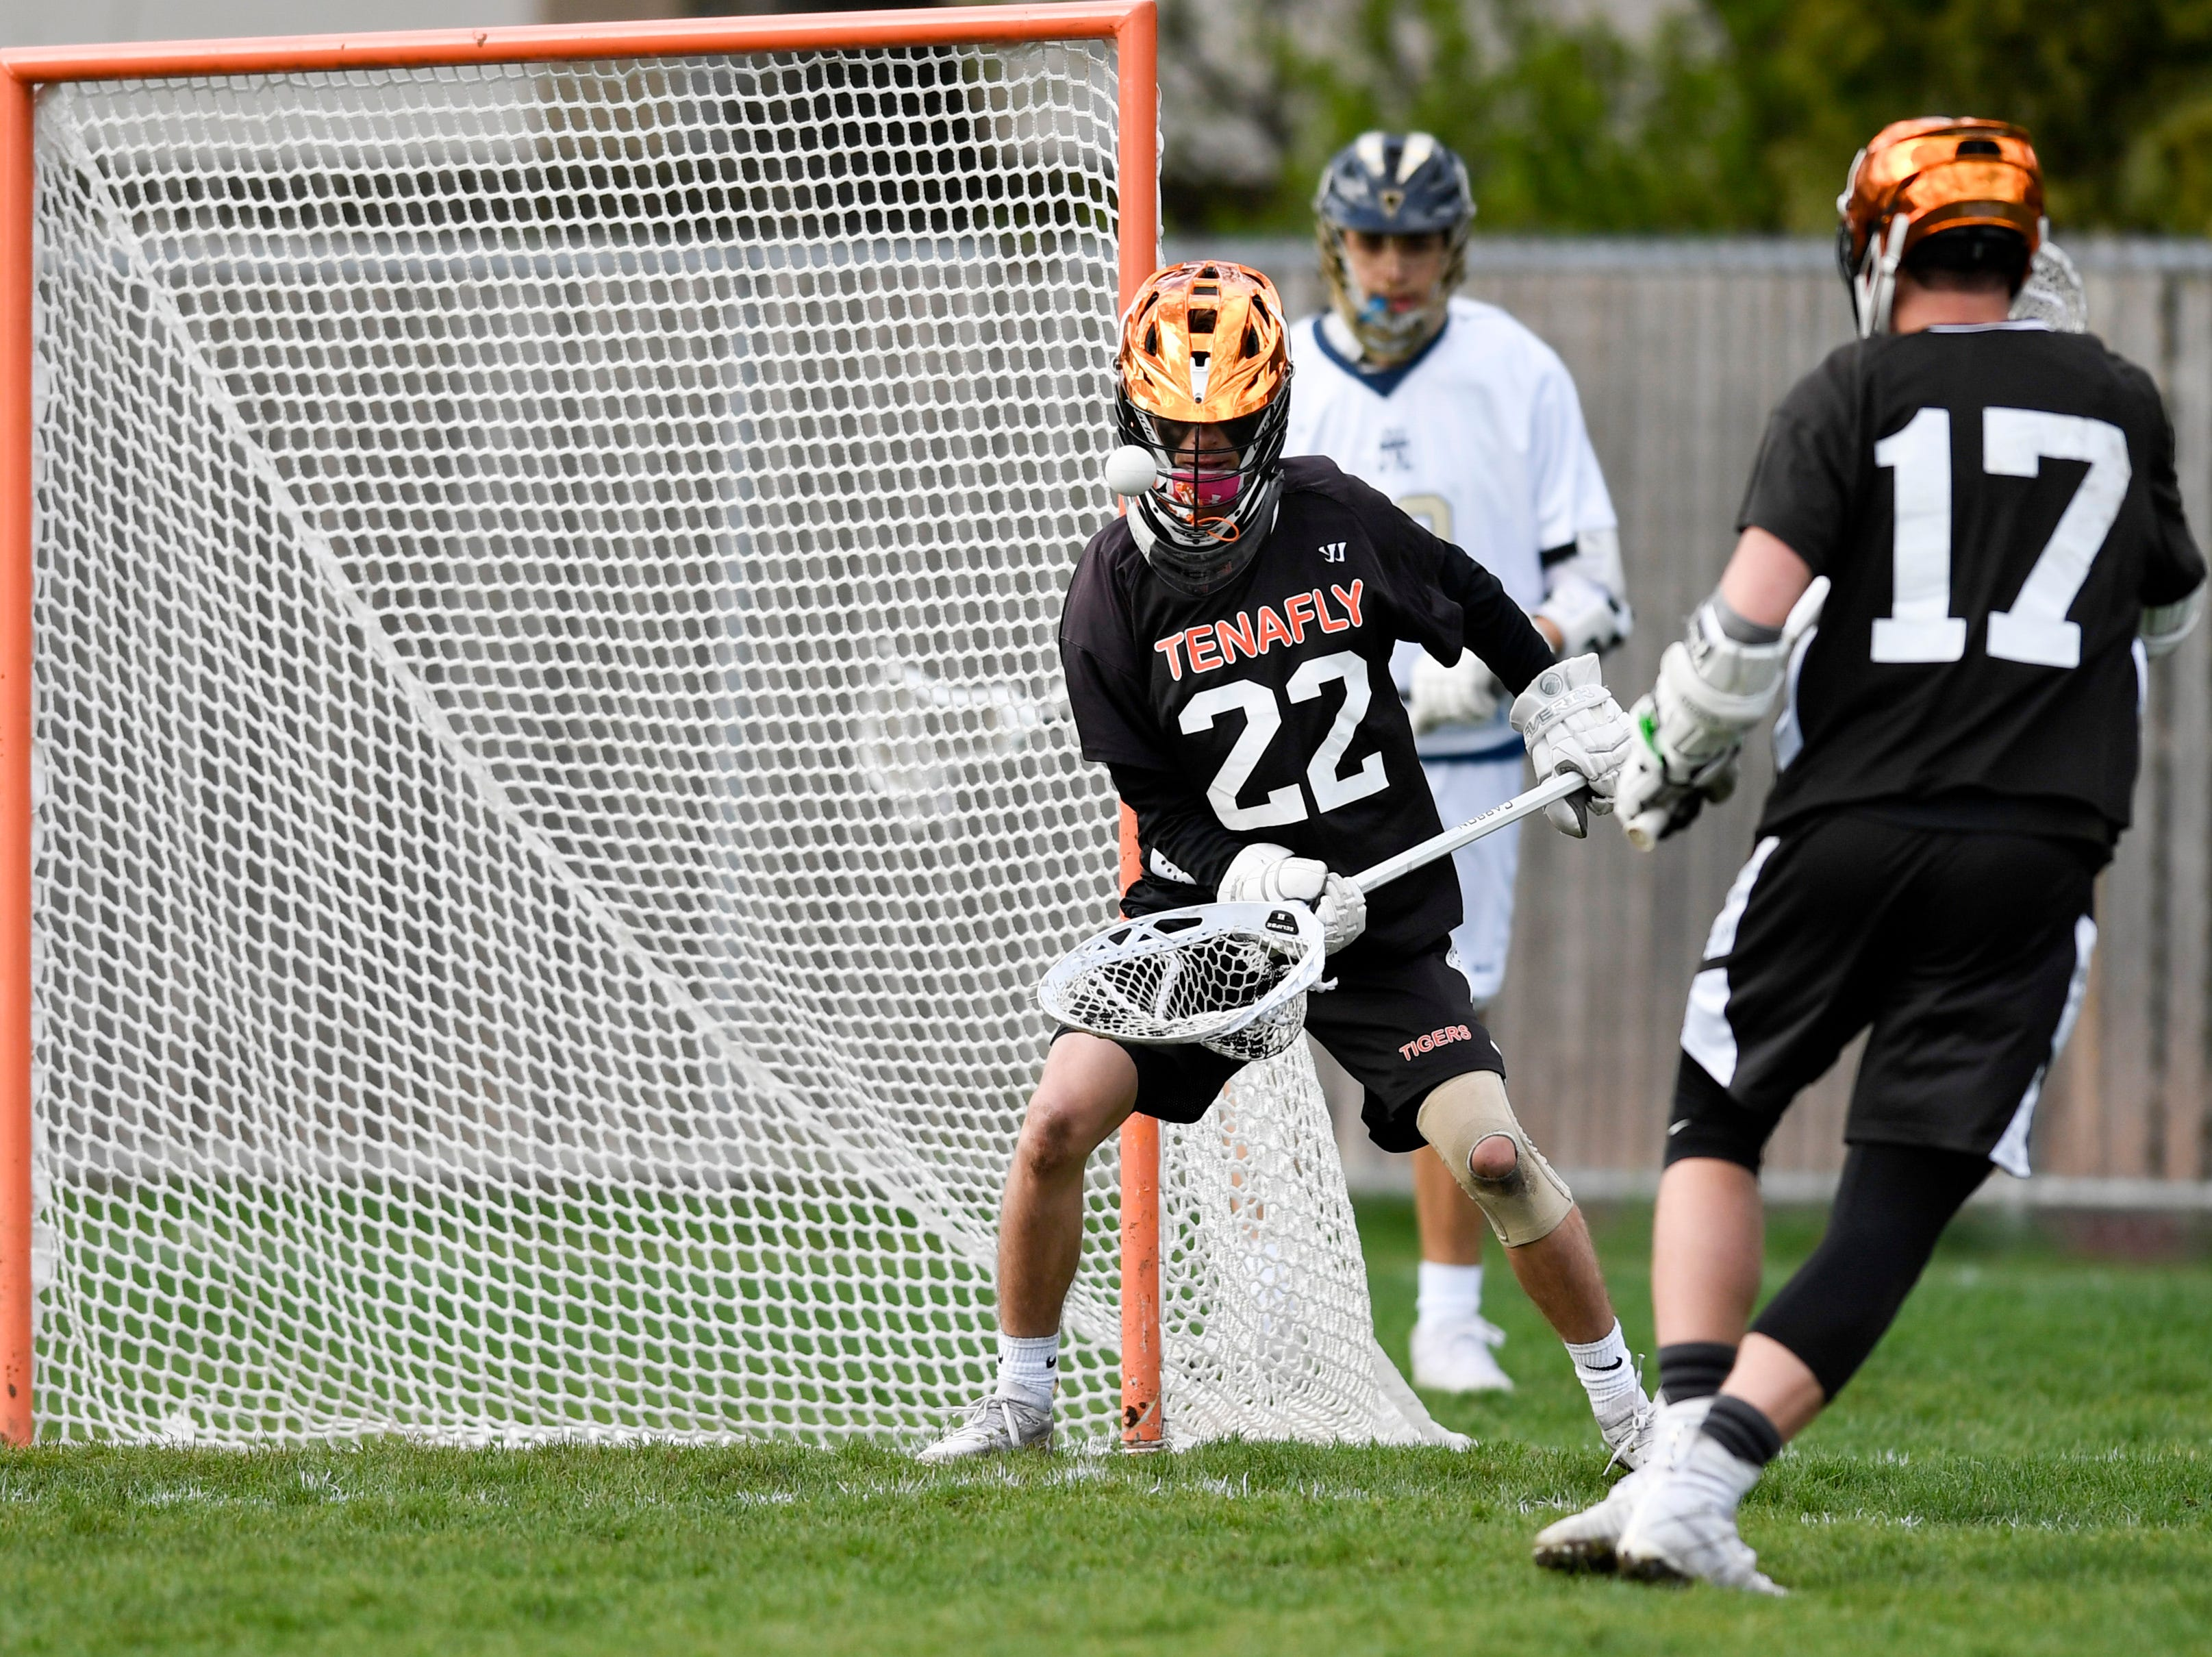 Tenafly goalie Dylan Wickey (22) juggles the ball after a save against Dwight Englewood on Monday, April 15, 2019, in Englewood.